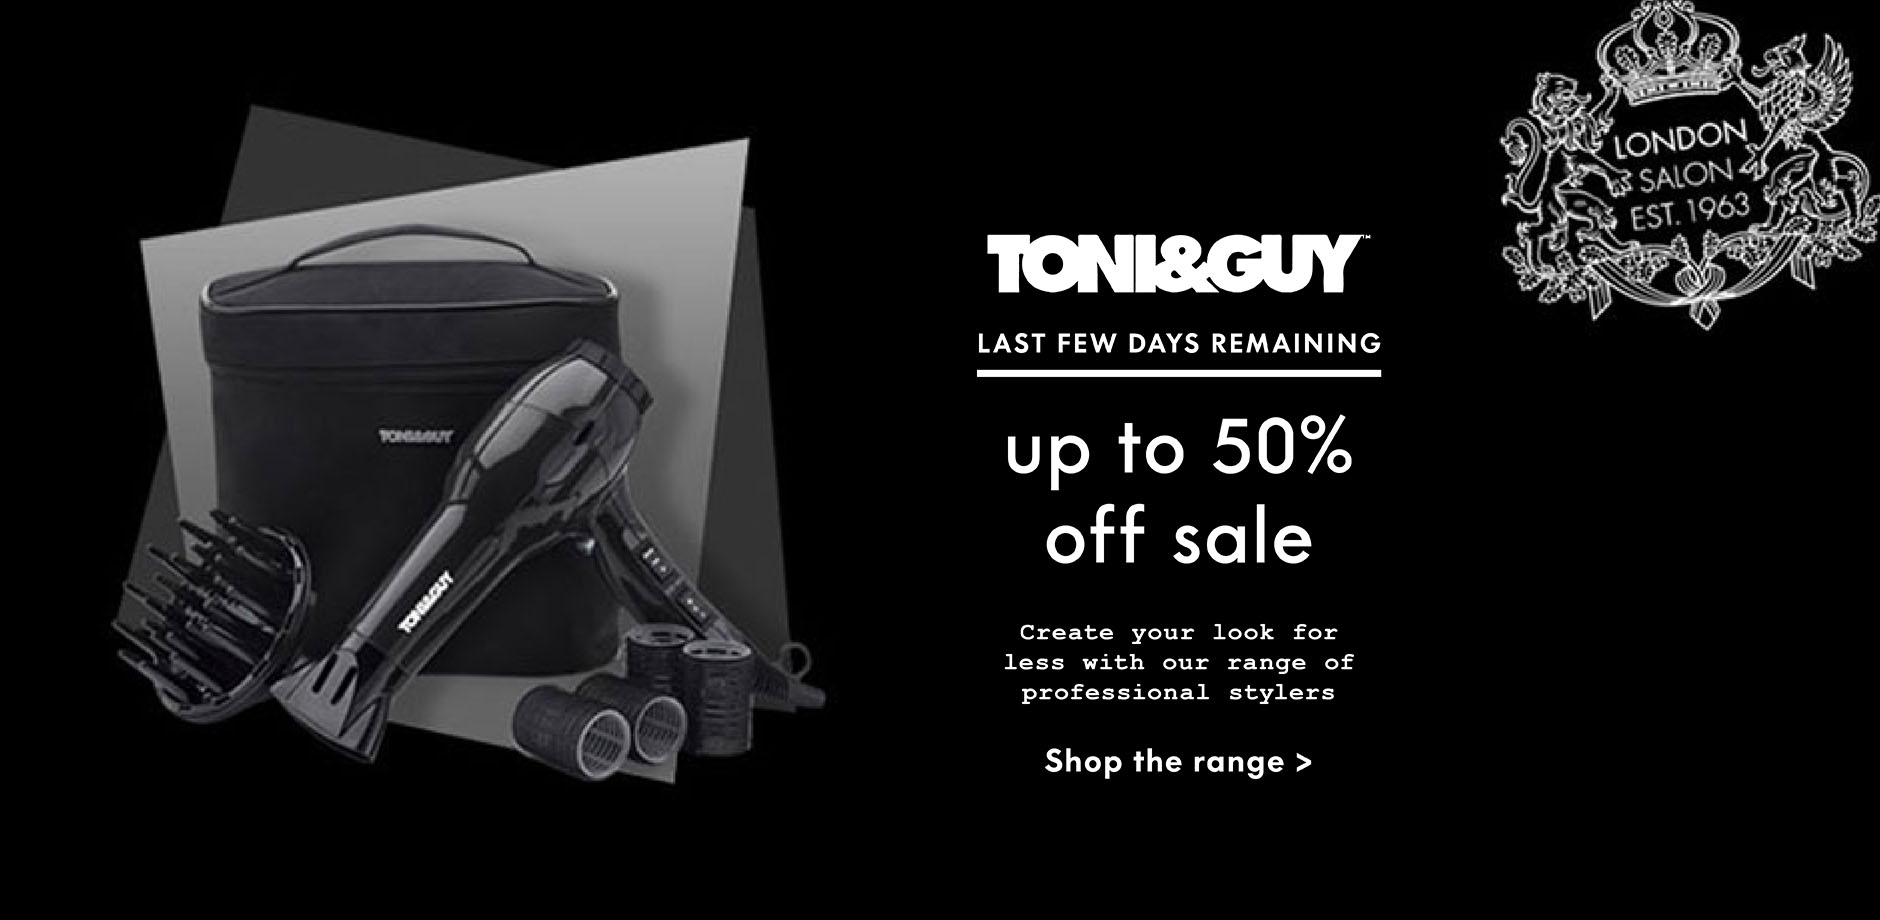 TONI&GUY electrical sale ending